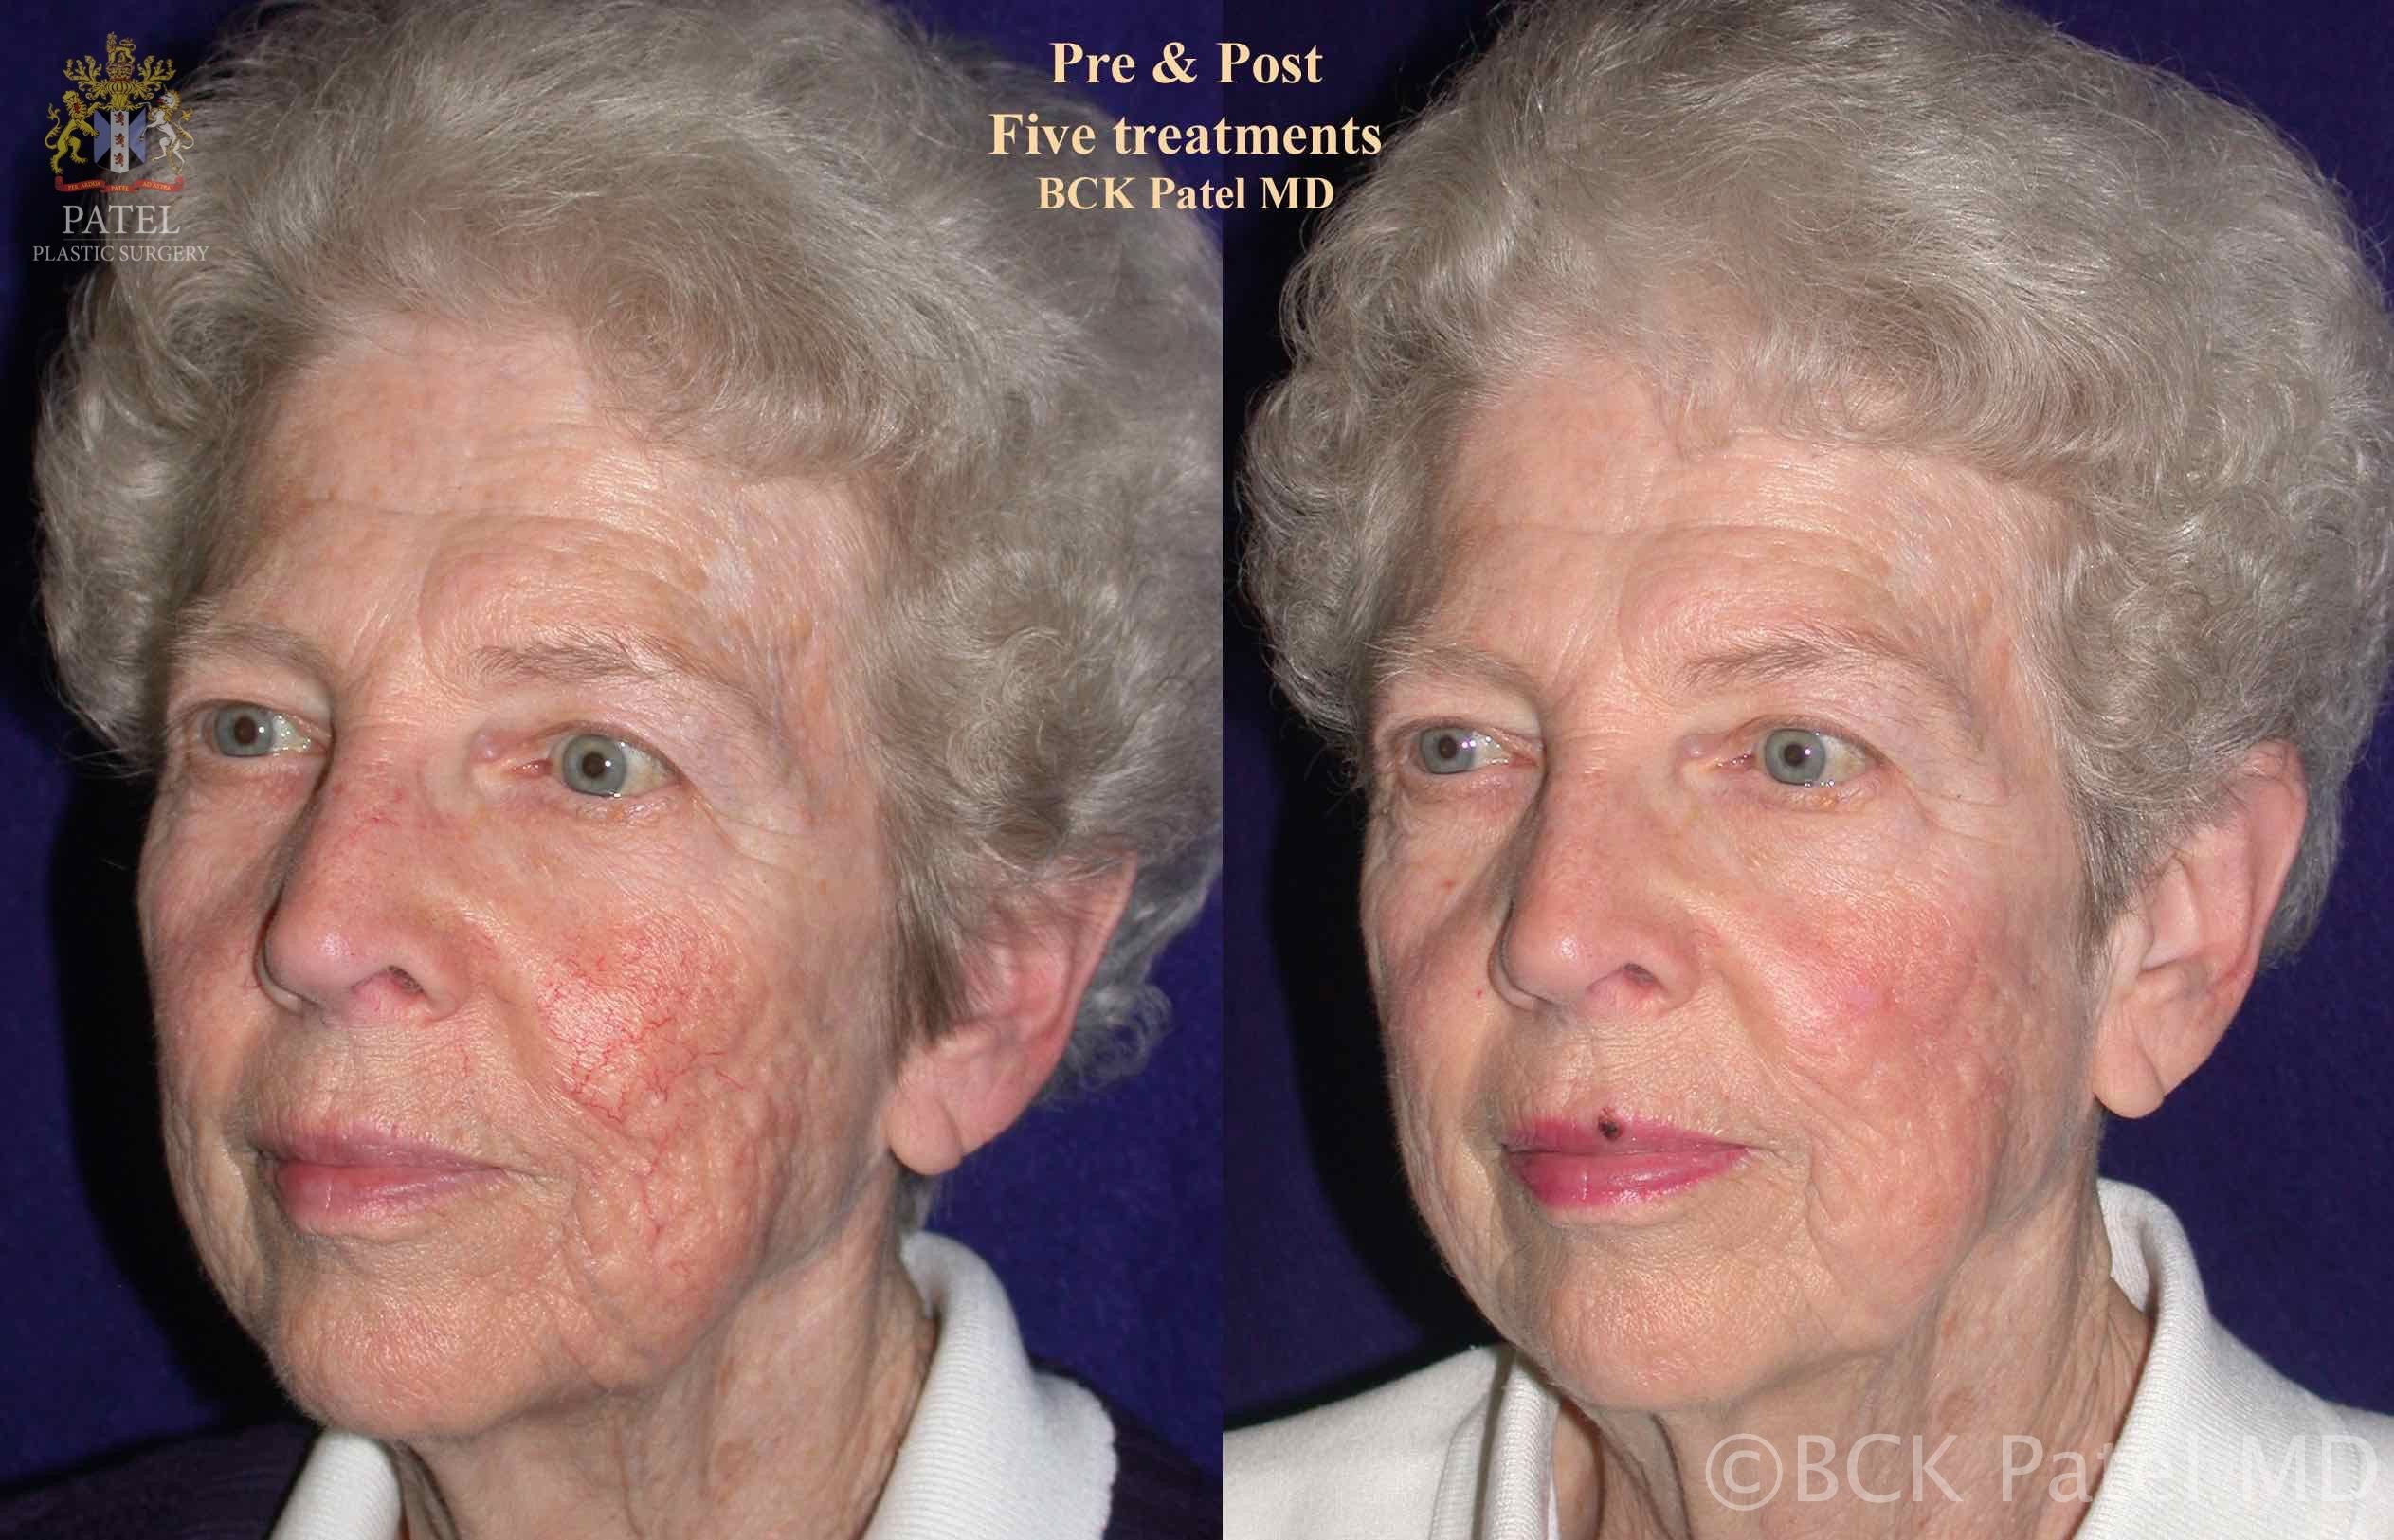 Results of facial fotofacial treatments by Dr. BCK Patel MD, FRCS, Salt Lake City, St George